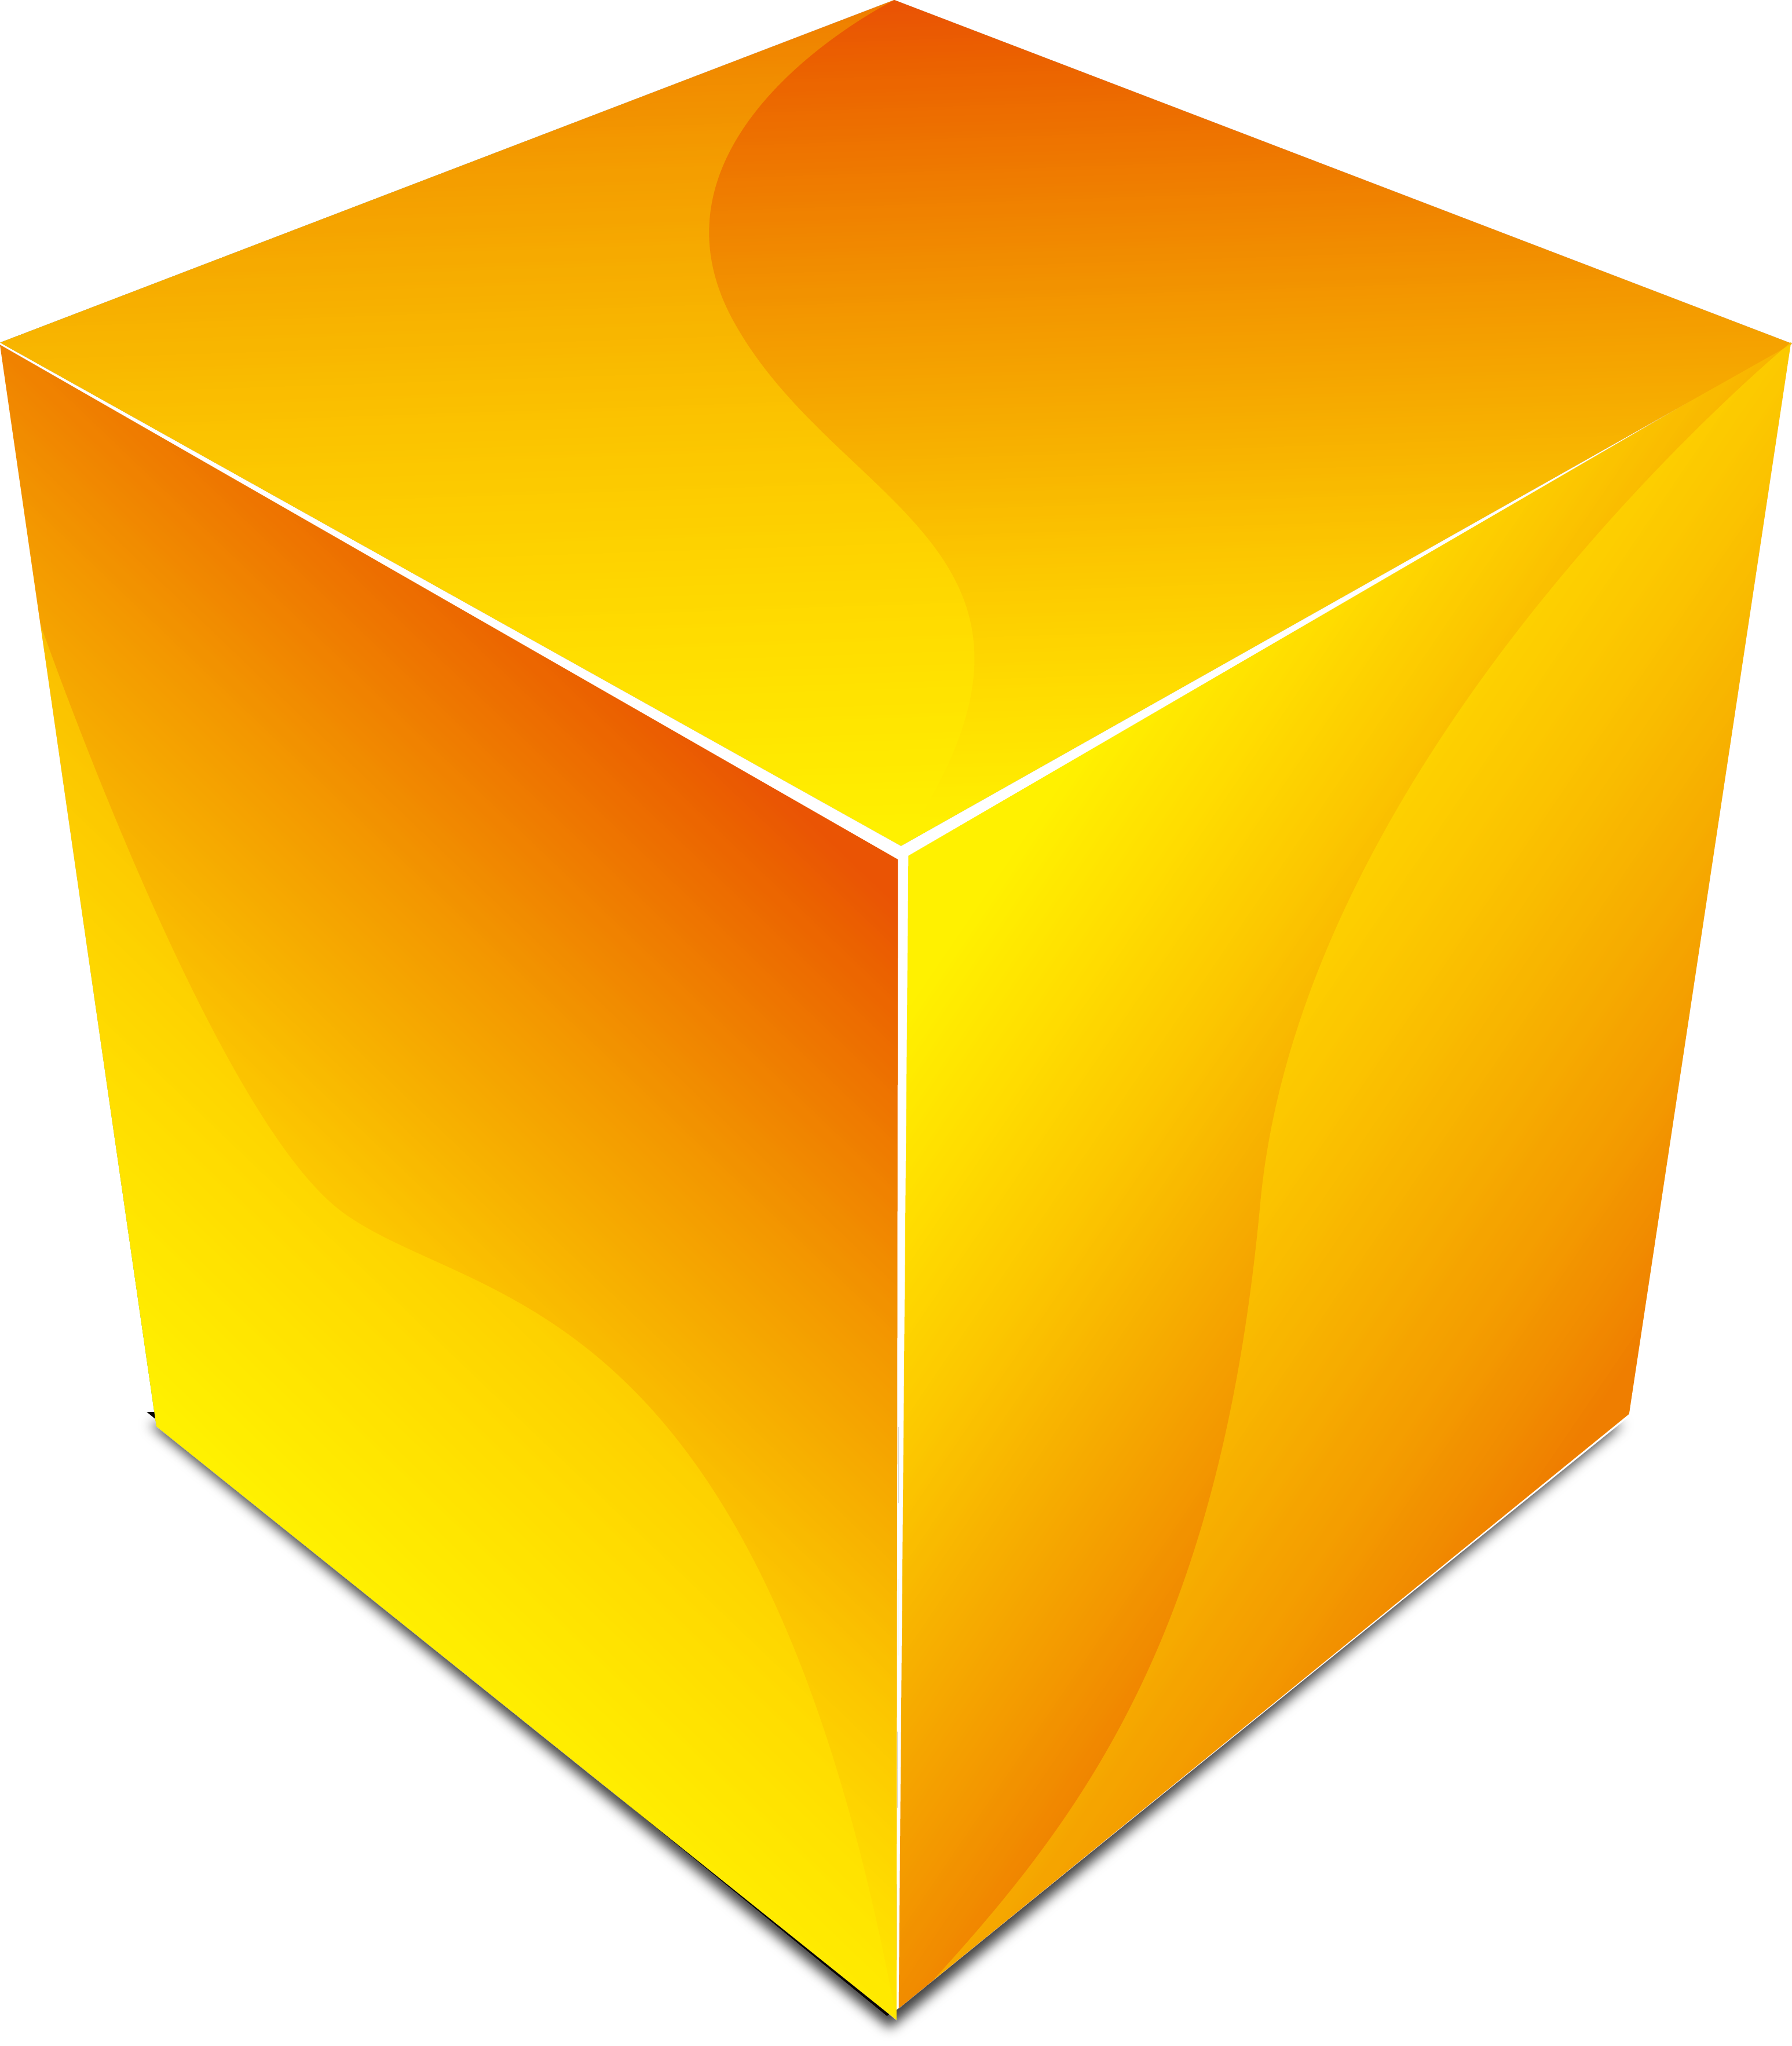 Square clipart yellow square. Industry box business material